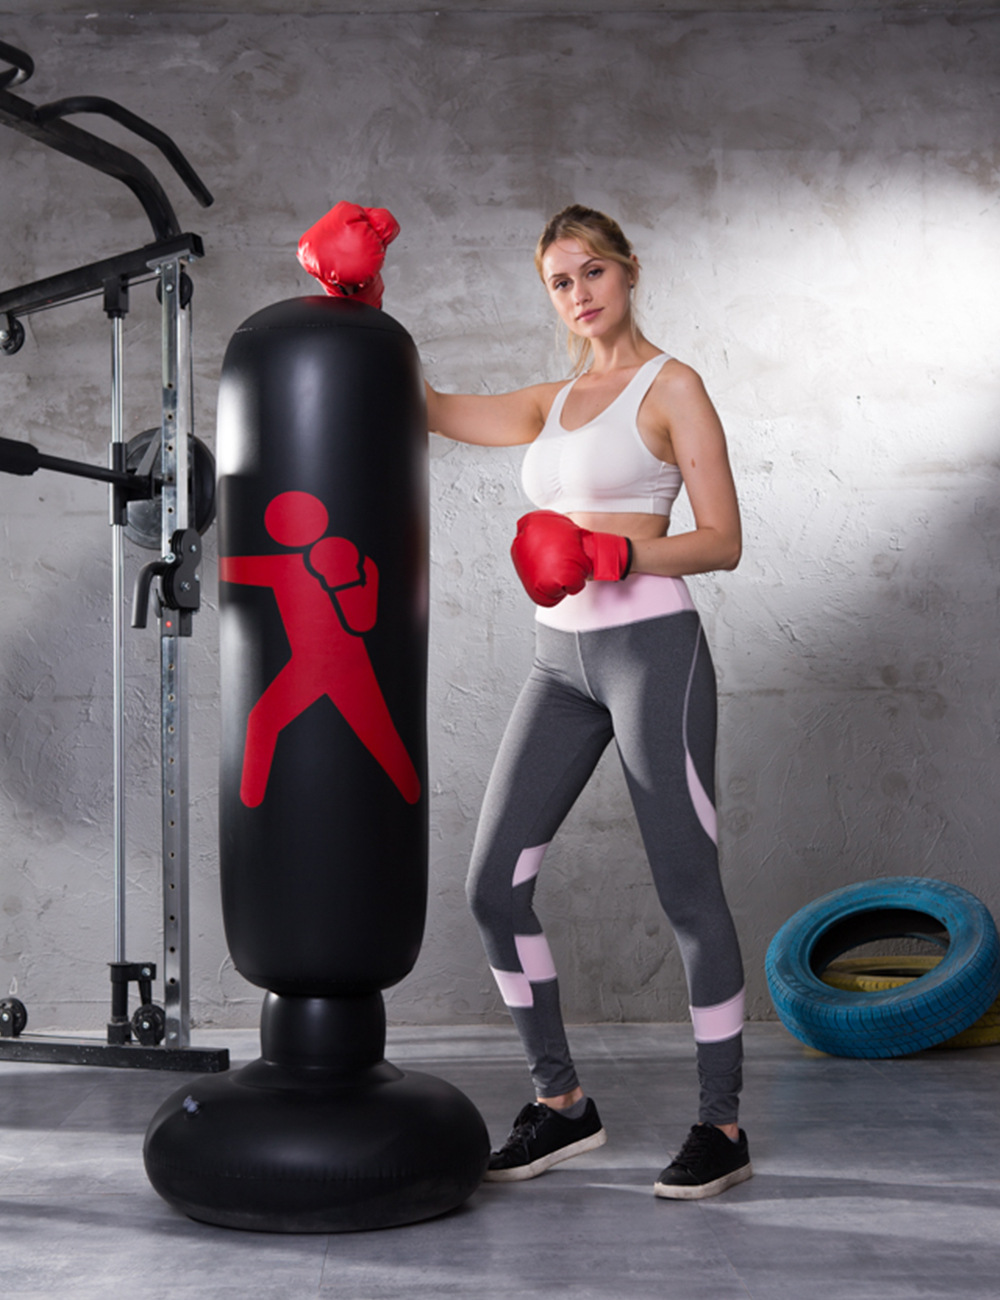 Decompression Training at Home or The Gym for Adult and Children Yous Auto 160cm Inflatable Punching Bags,Fitness Punch Bag Free Standing Kick Boxing Bag